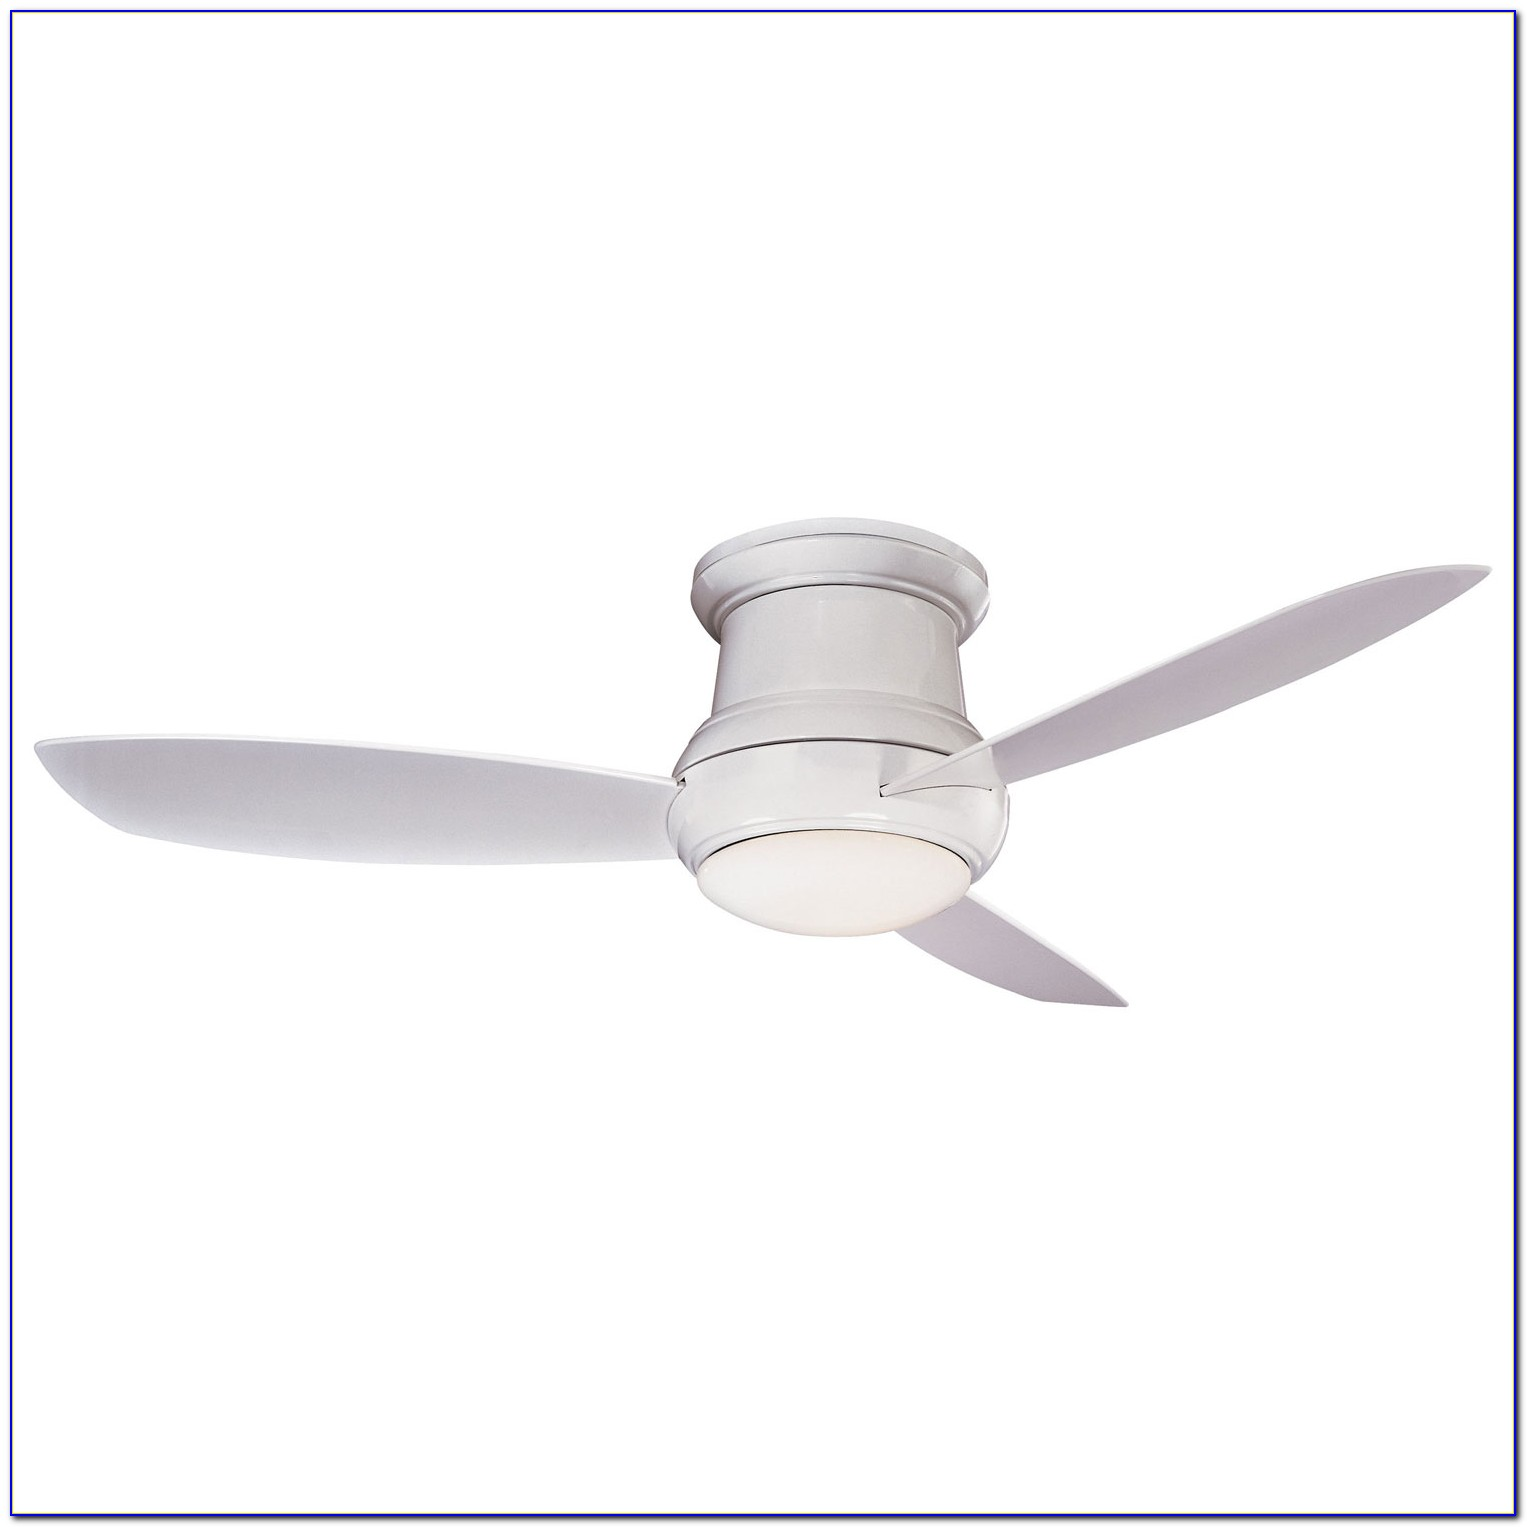 Concept Ii 52 Ceiling Fan